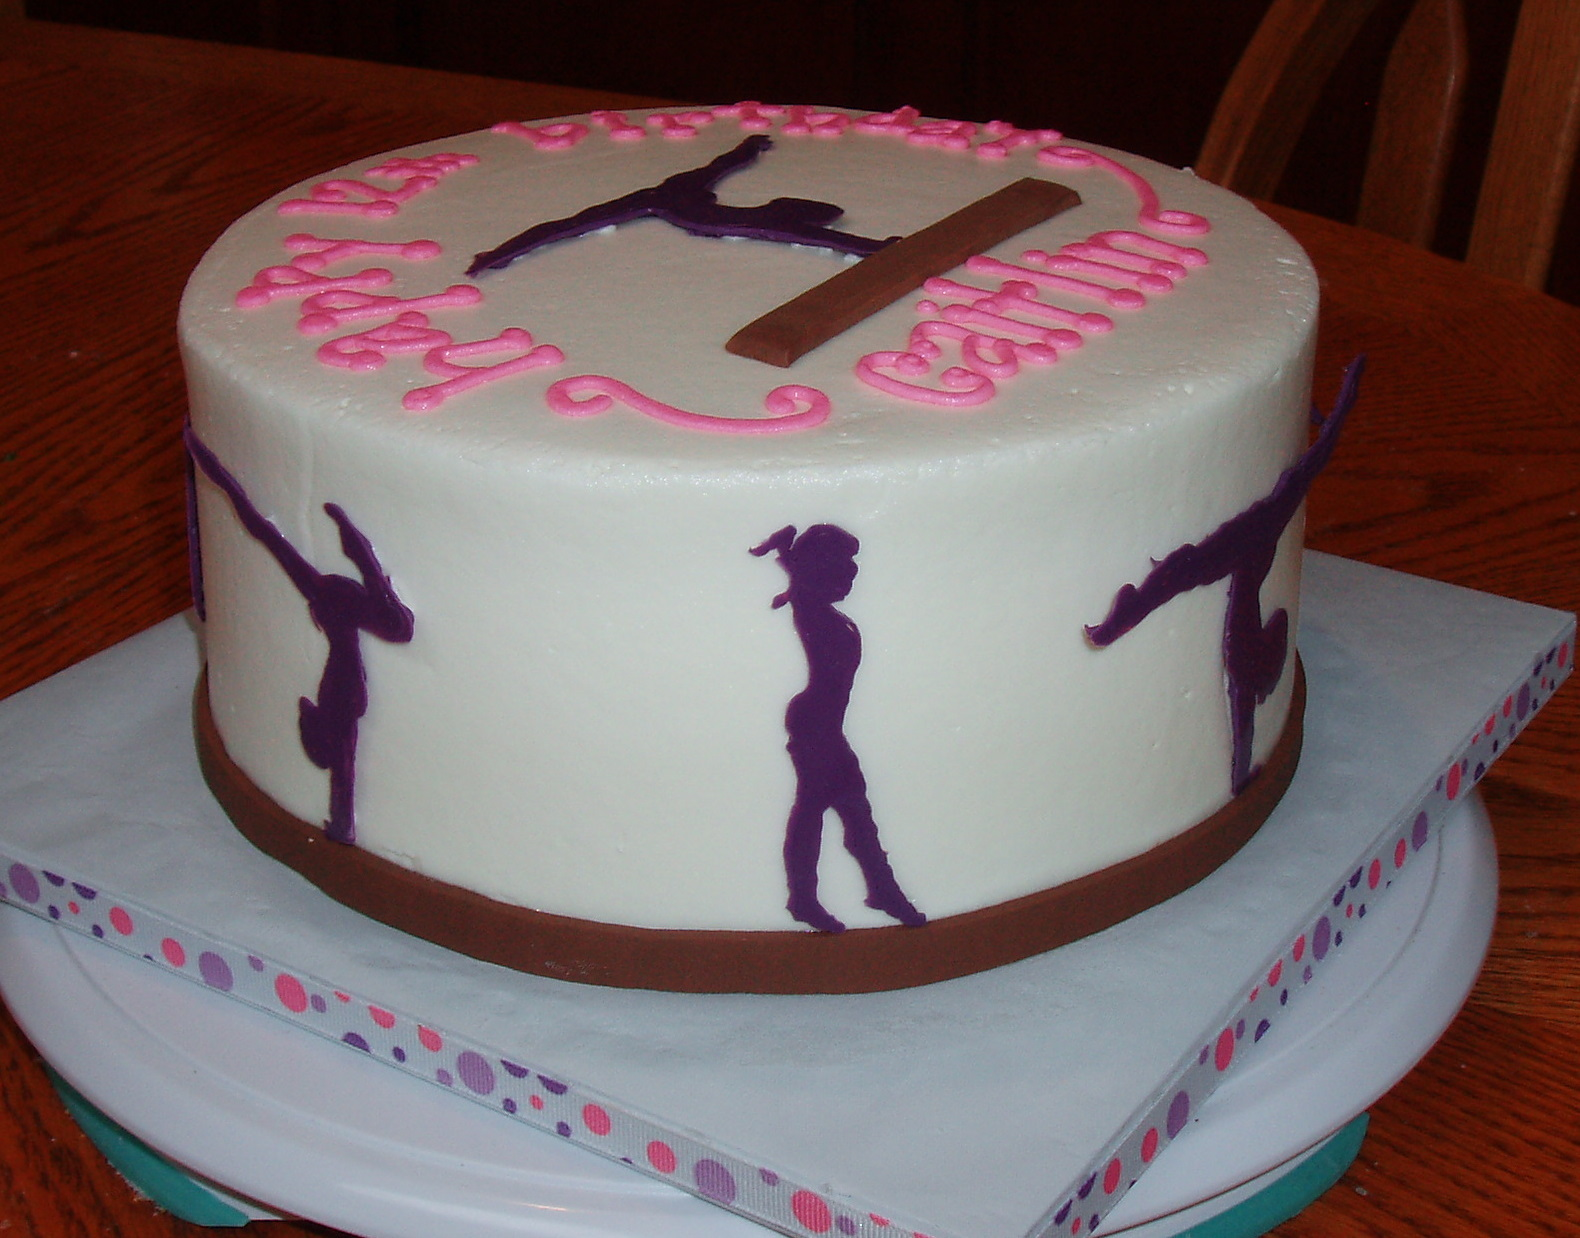 Cake Decorating Ideas Gymnastics : Cake Believe: Gymnastics Girl